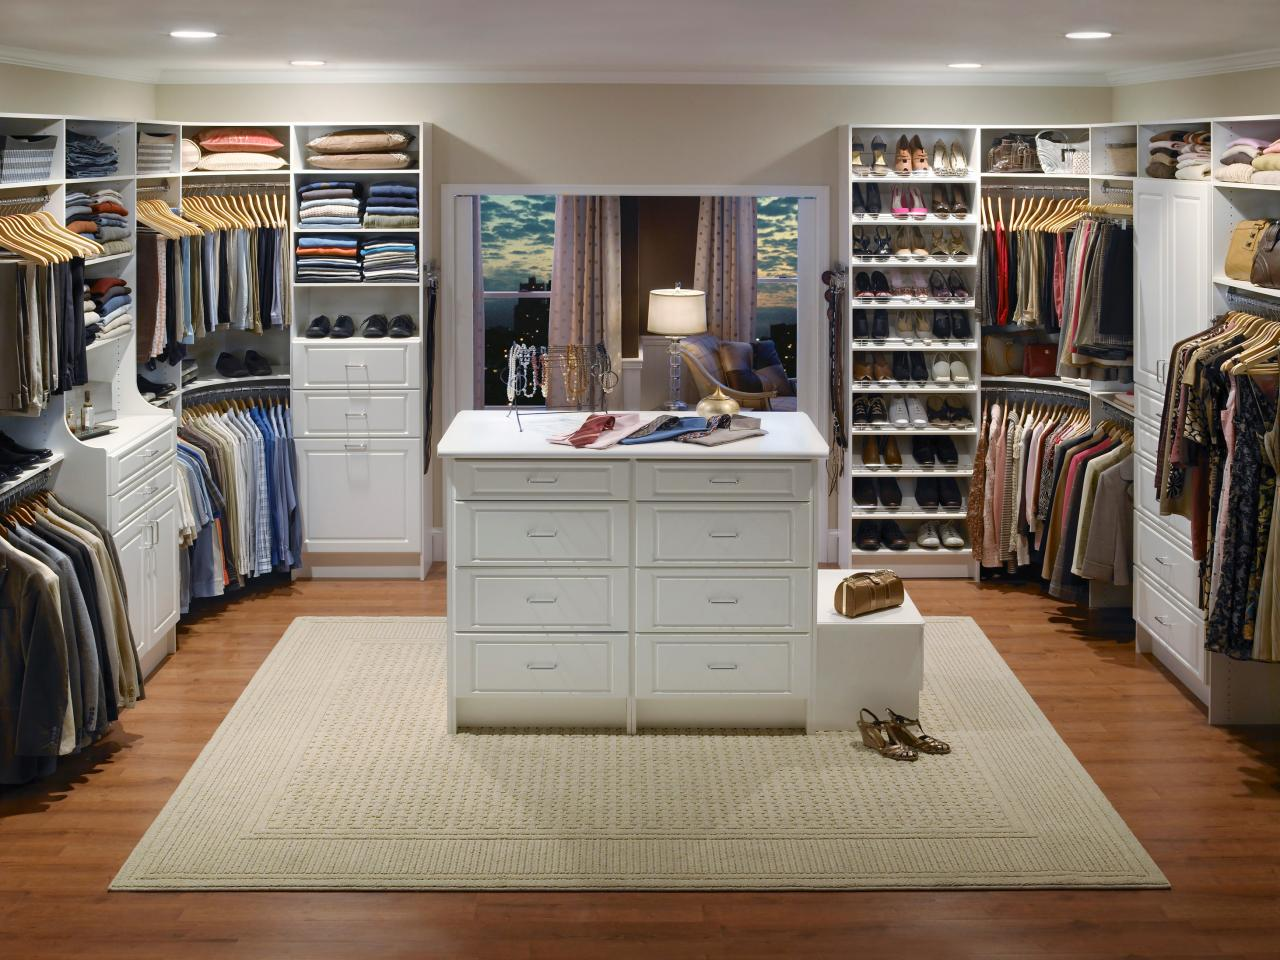 Install Bright Lighting For Wide Walk In Closet With Stunning Design Ideas Using Classic